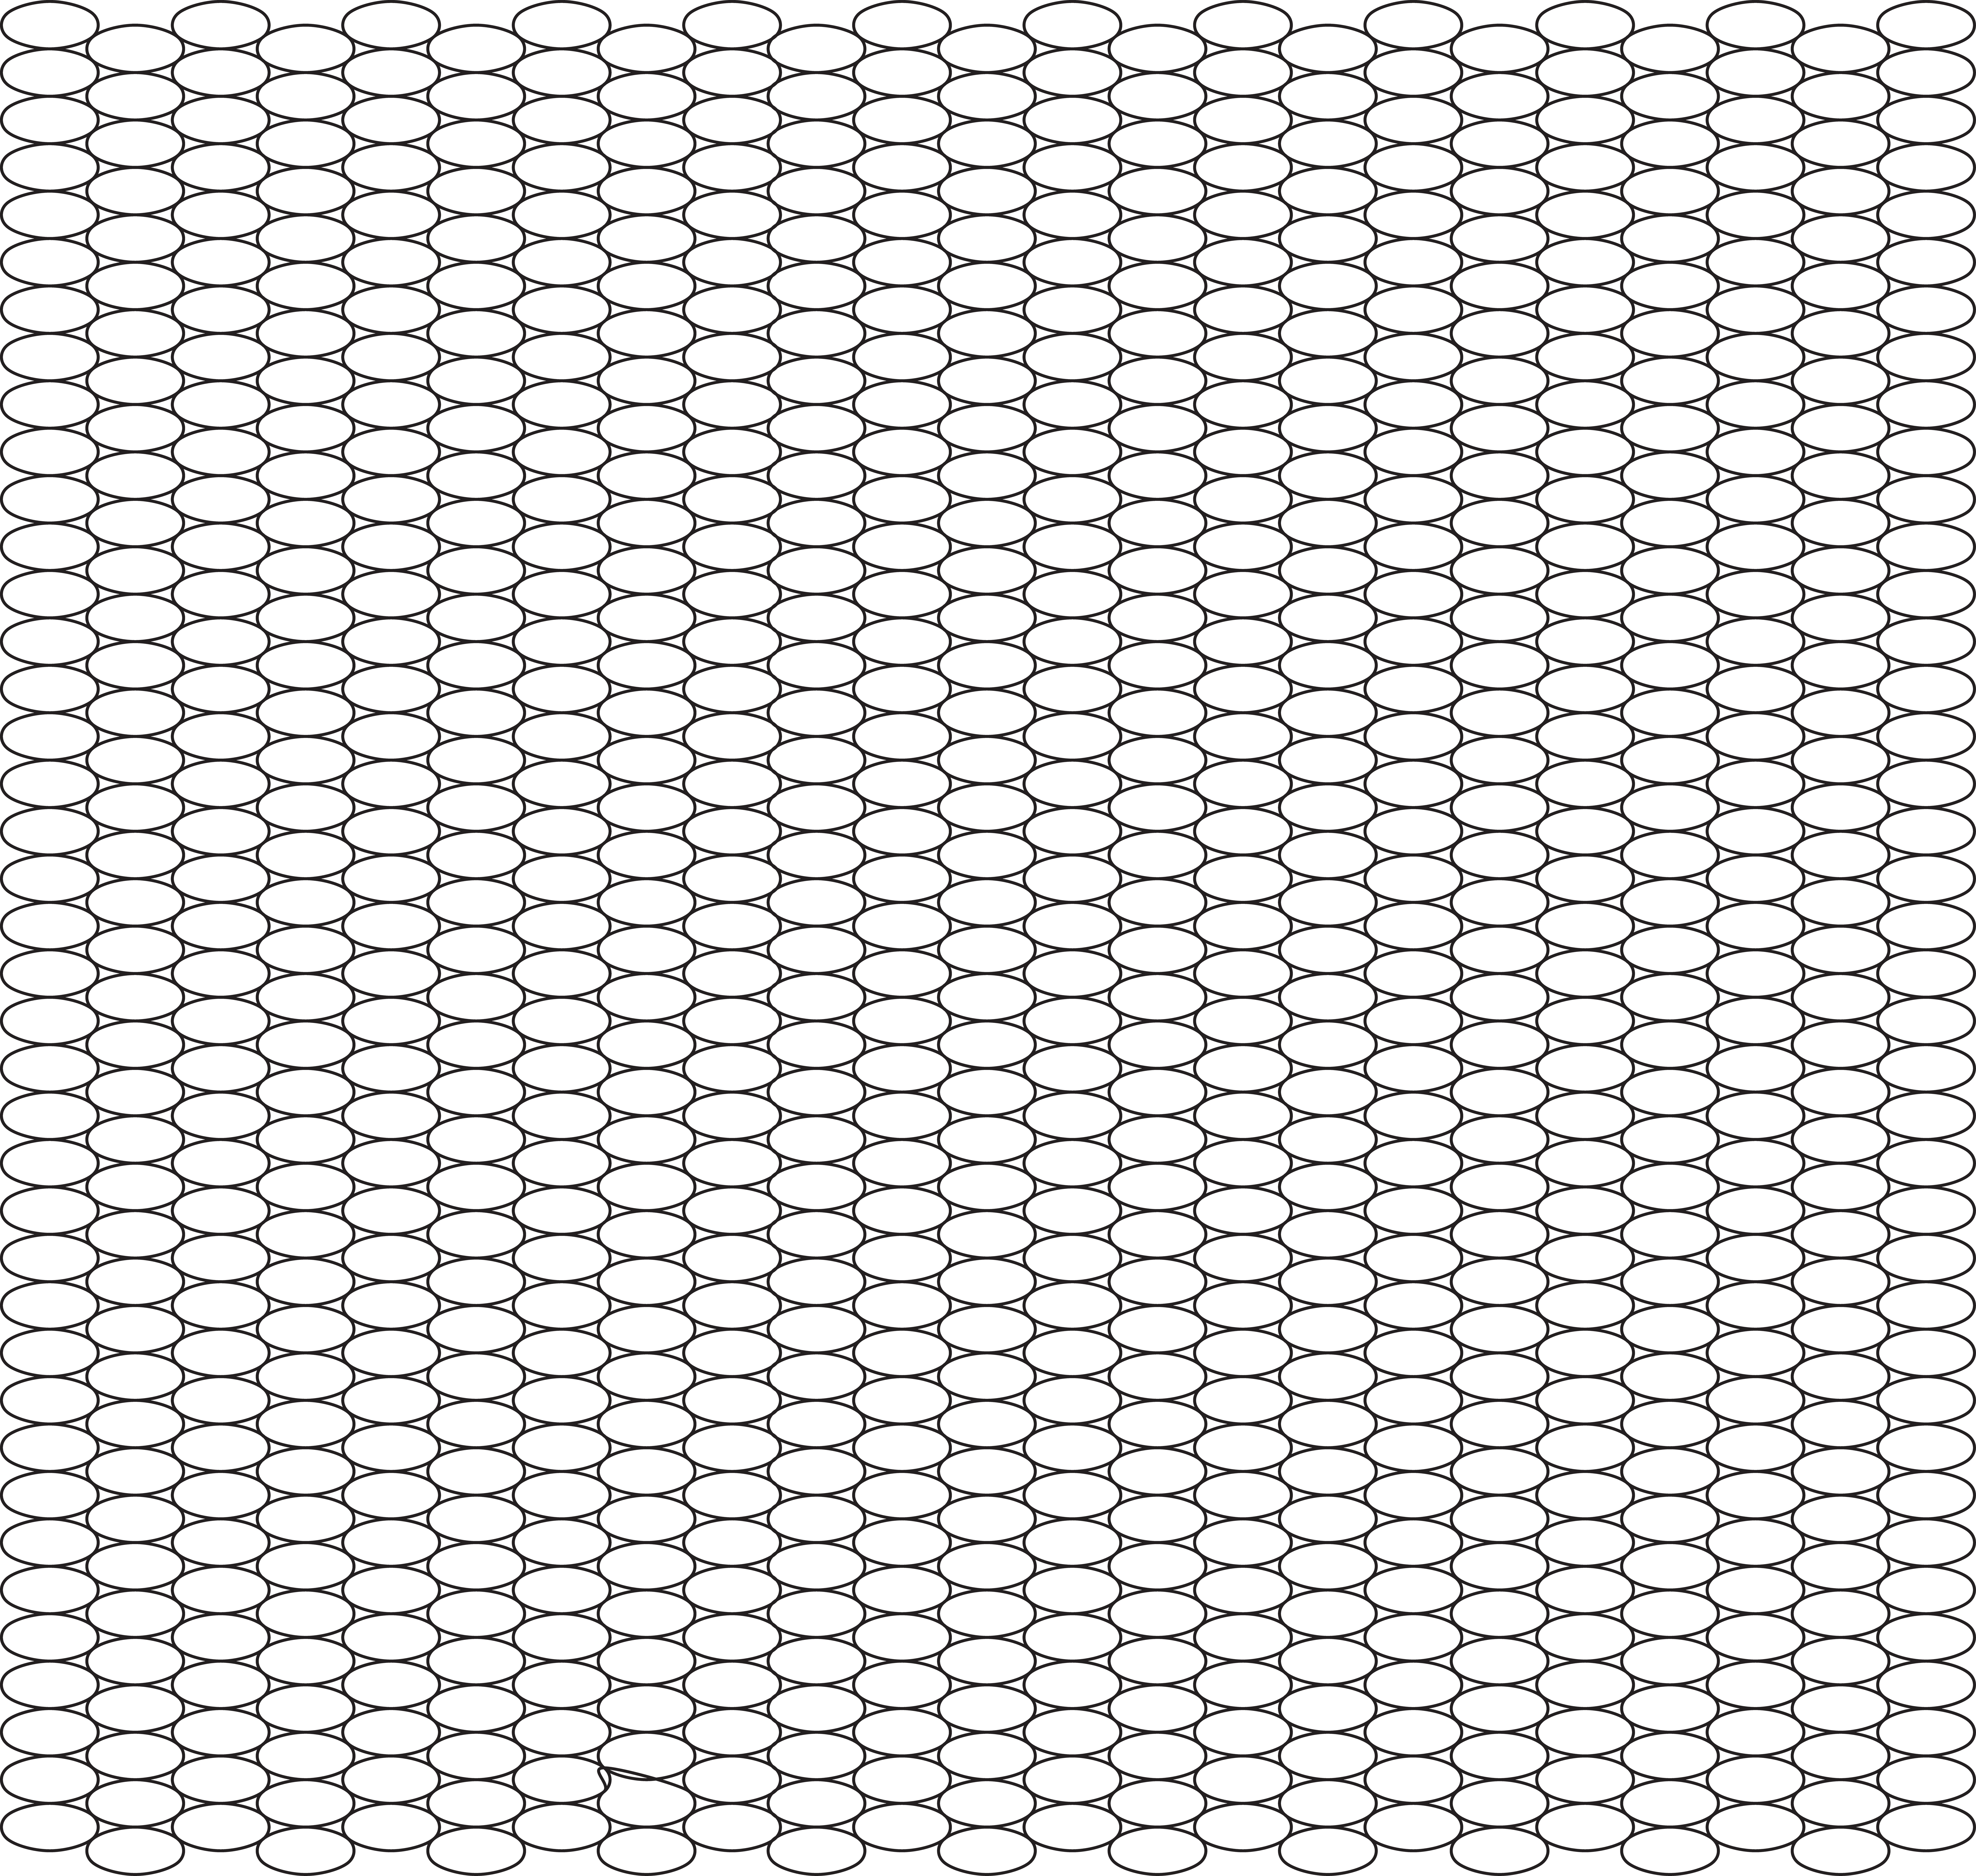 Mesh Background Effect PNG Clip Art Image.